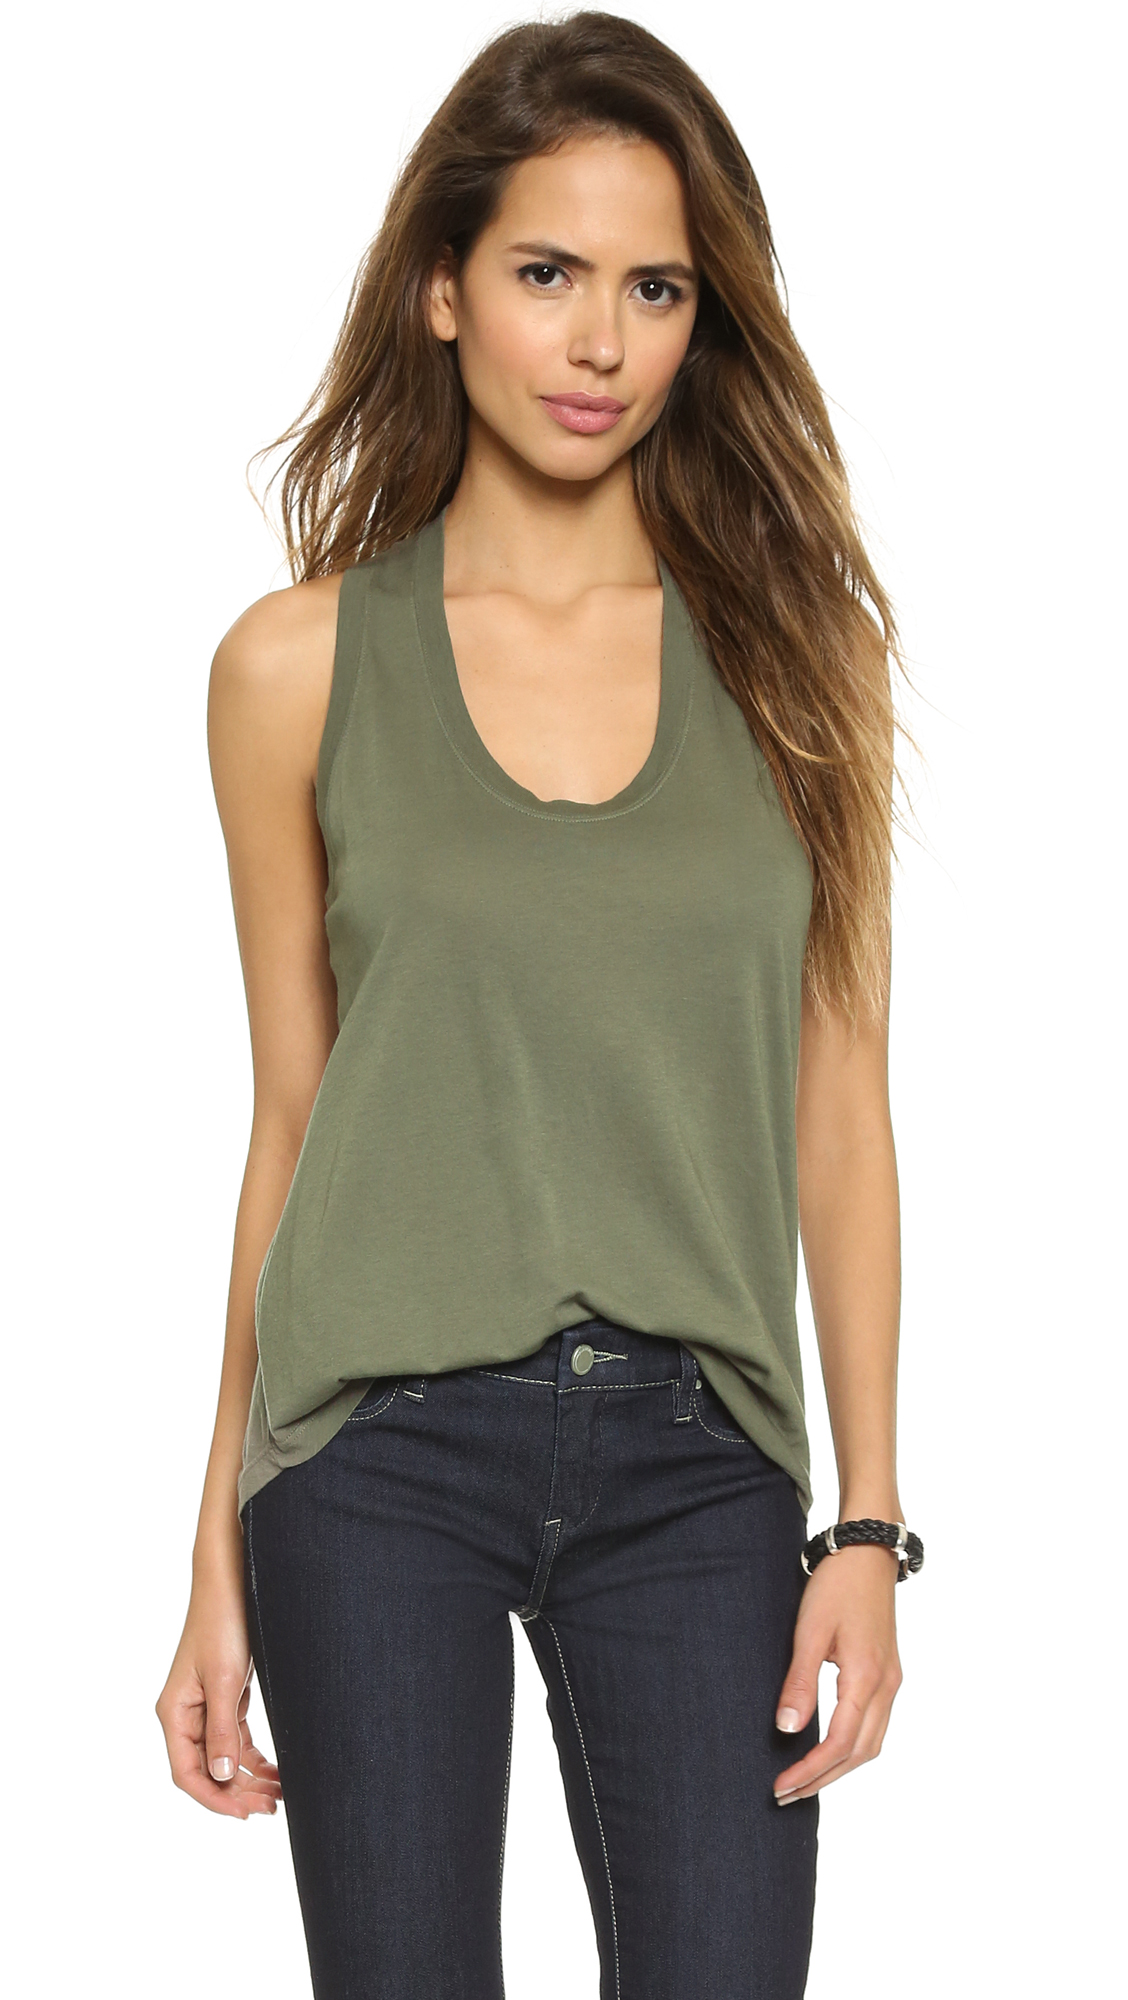 Splendid Very Light Jersey Tank - Army Green